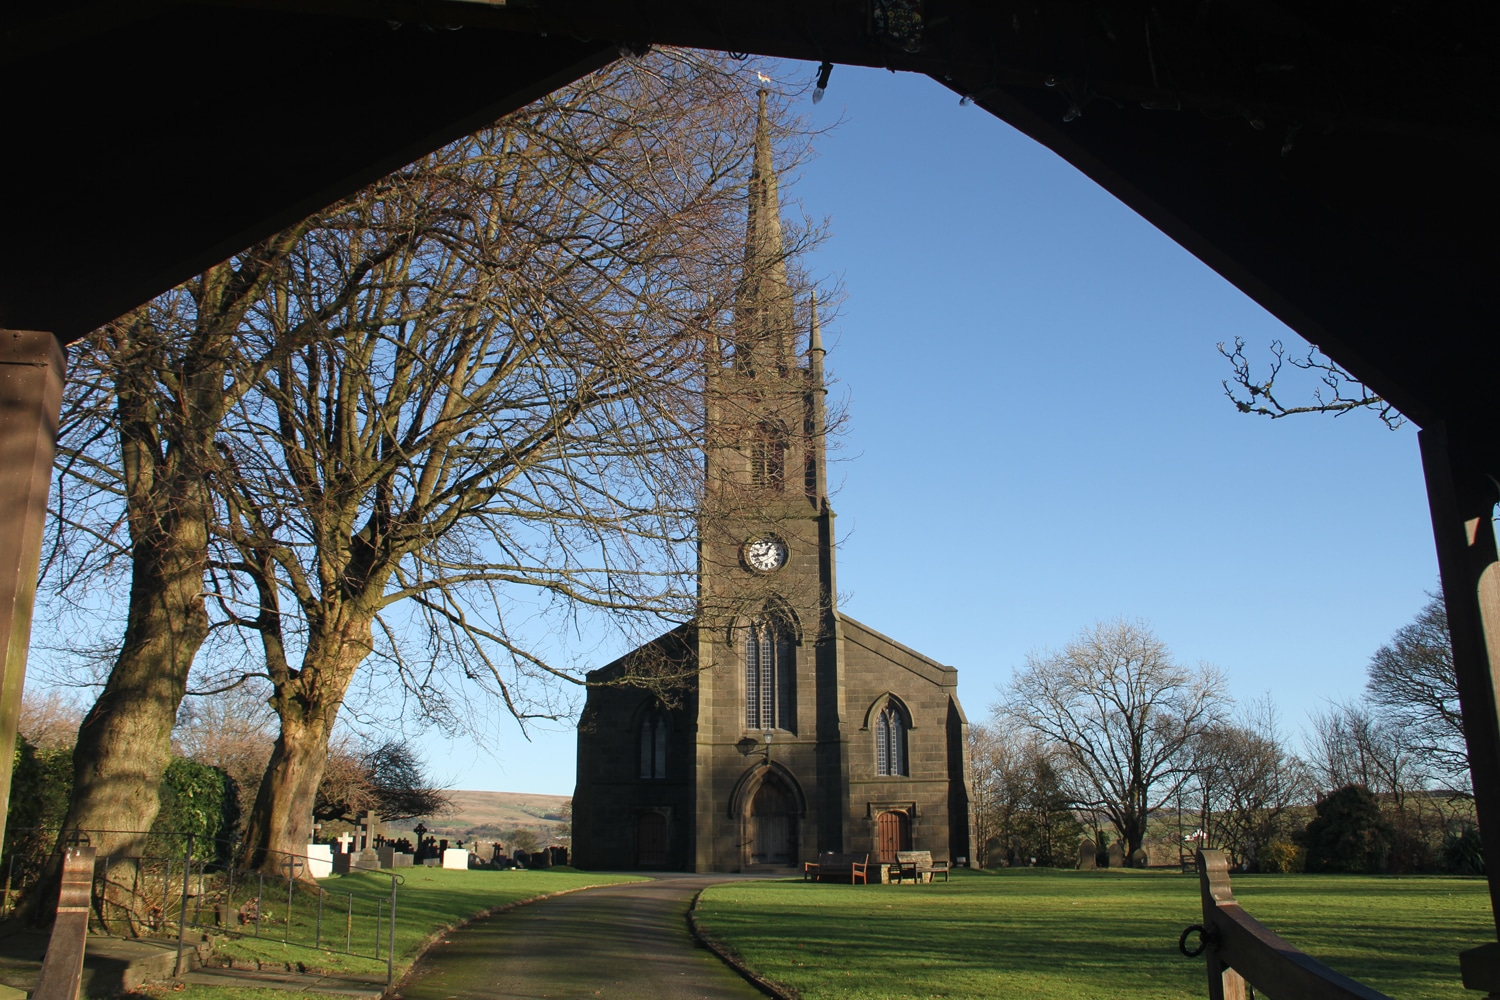 st-annes-church-turton6880